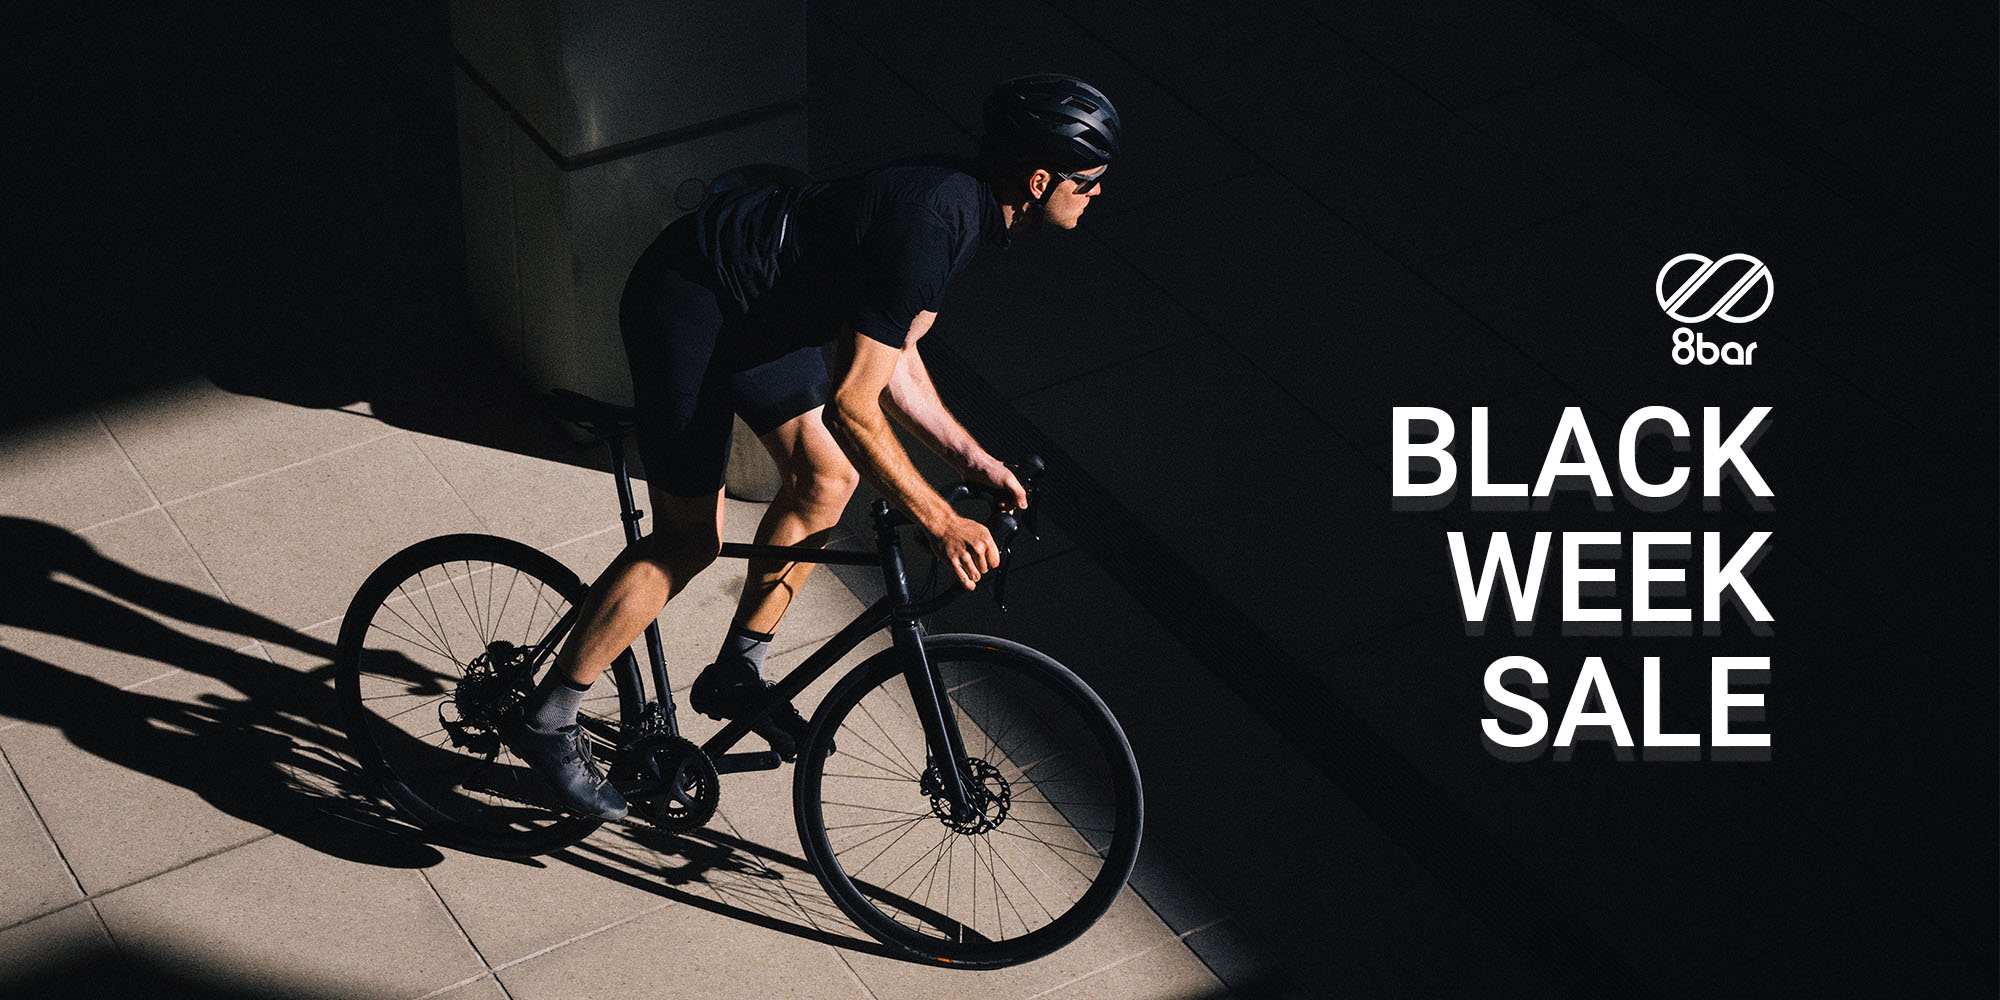 8bar Black Week Sale Image with cyclist